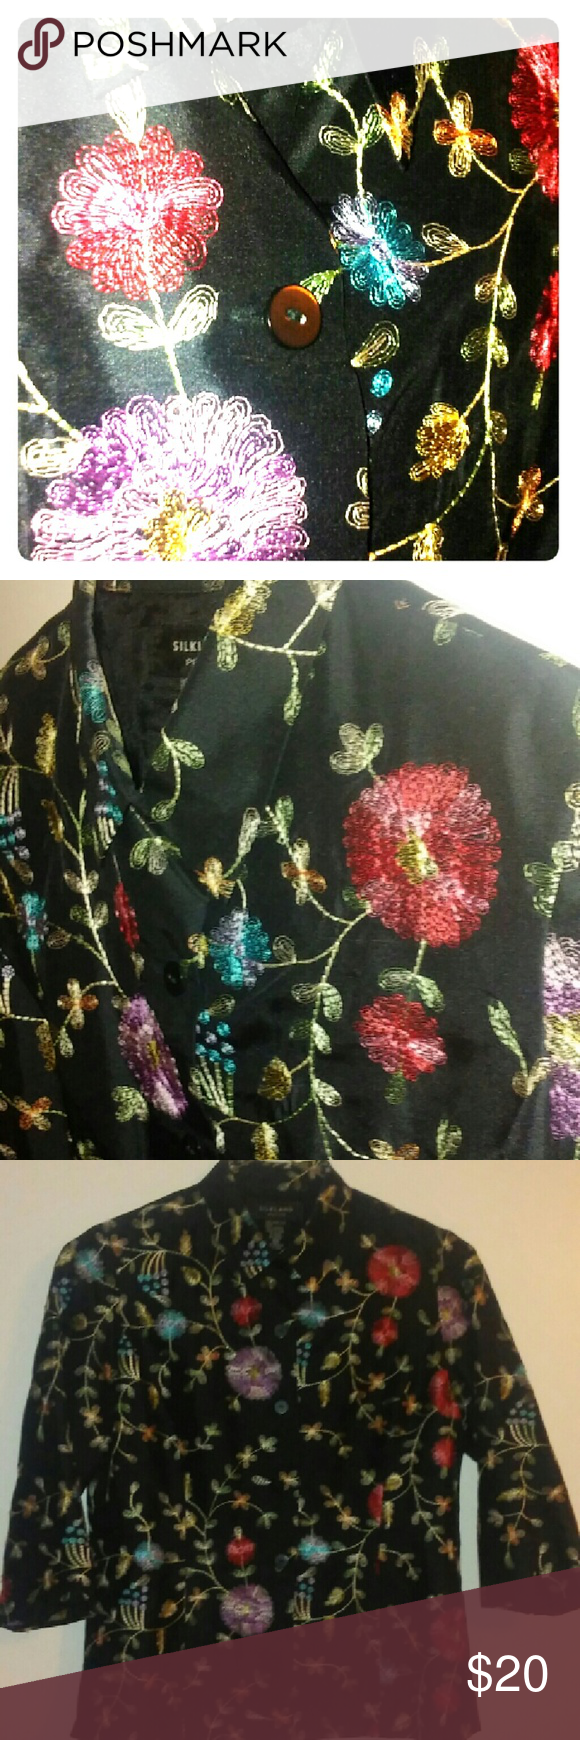 Silk top embroidered floral silk top silkland Tops Button Down Shirts